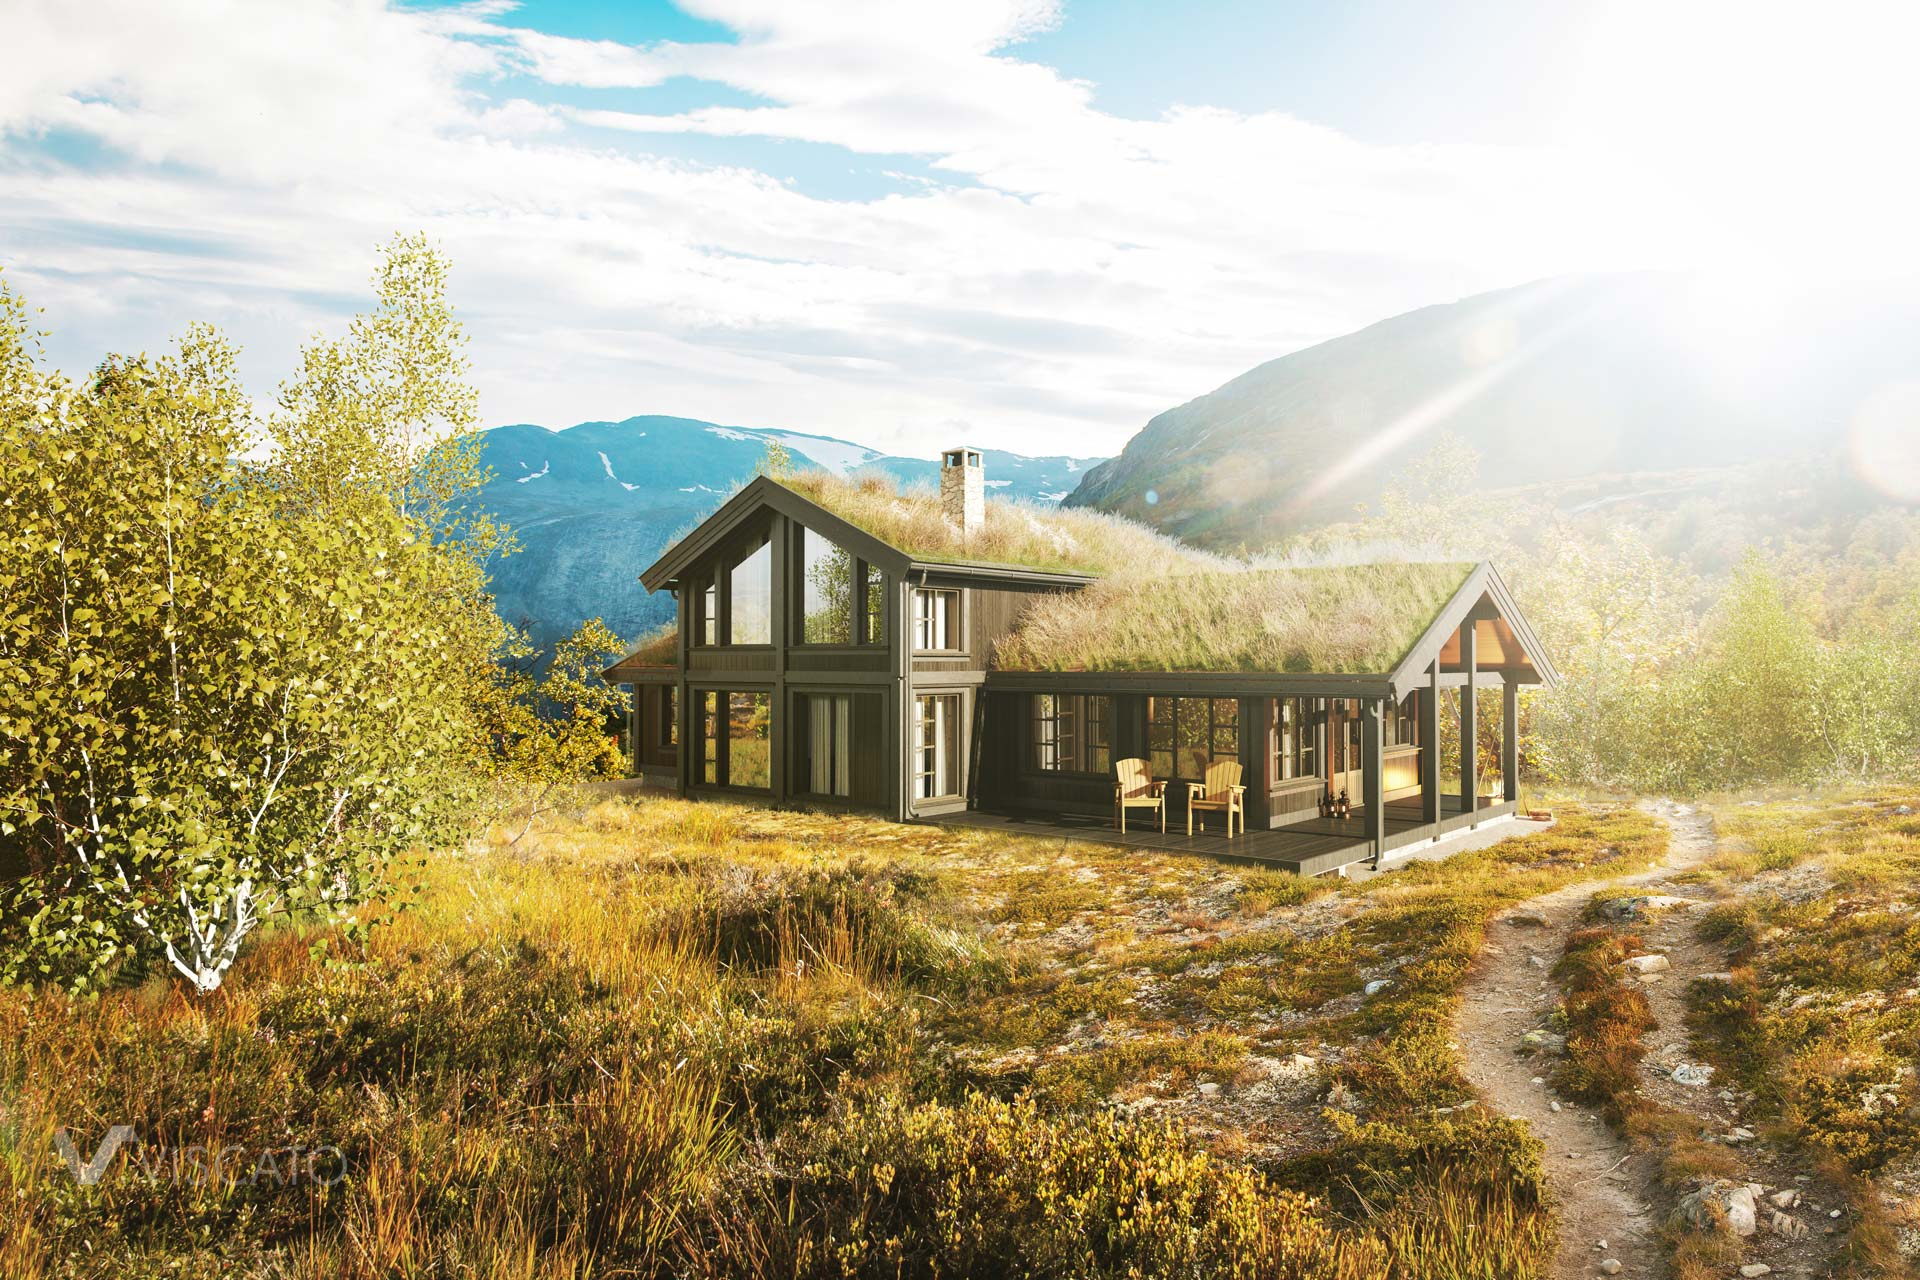 Cottage surrounded by nature, 3D Rendering